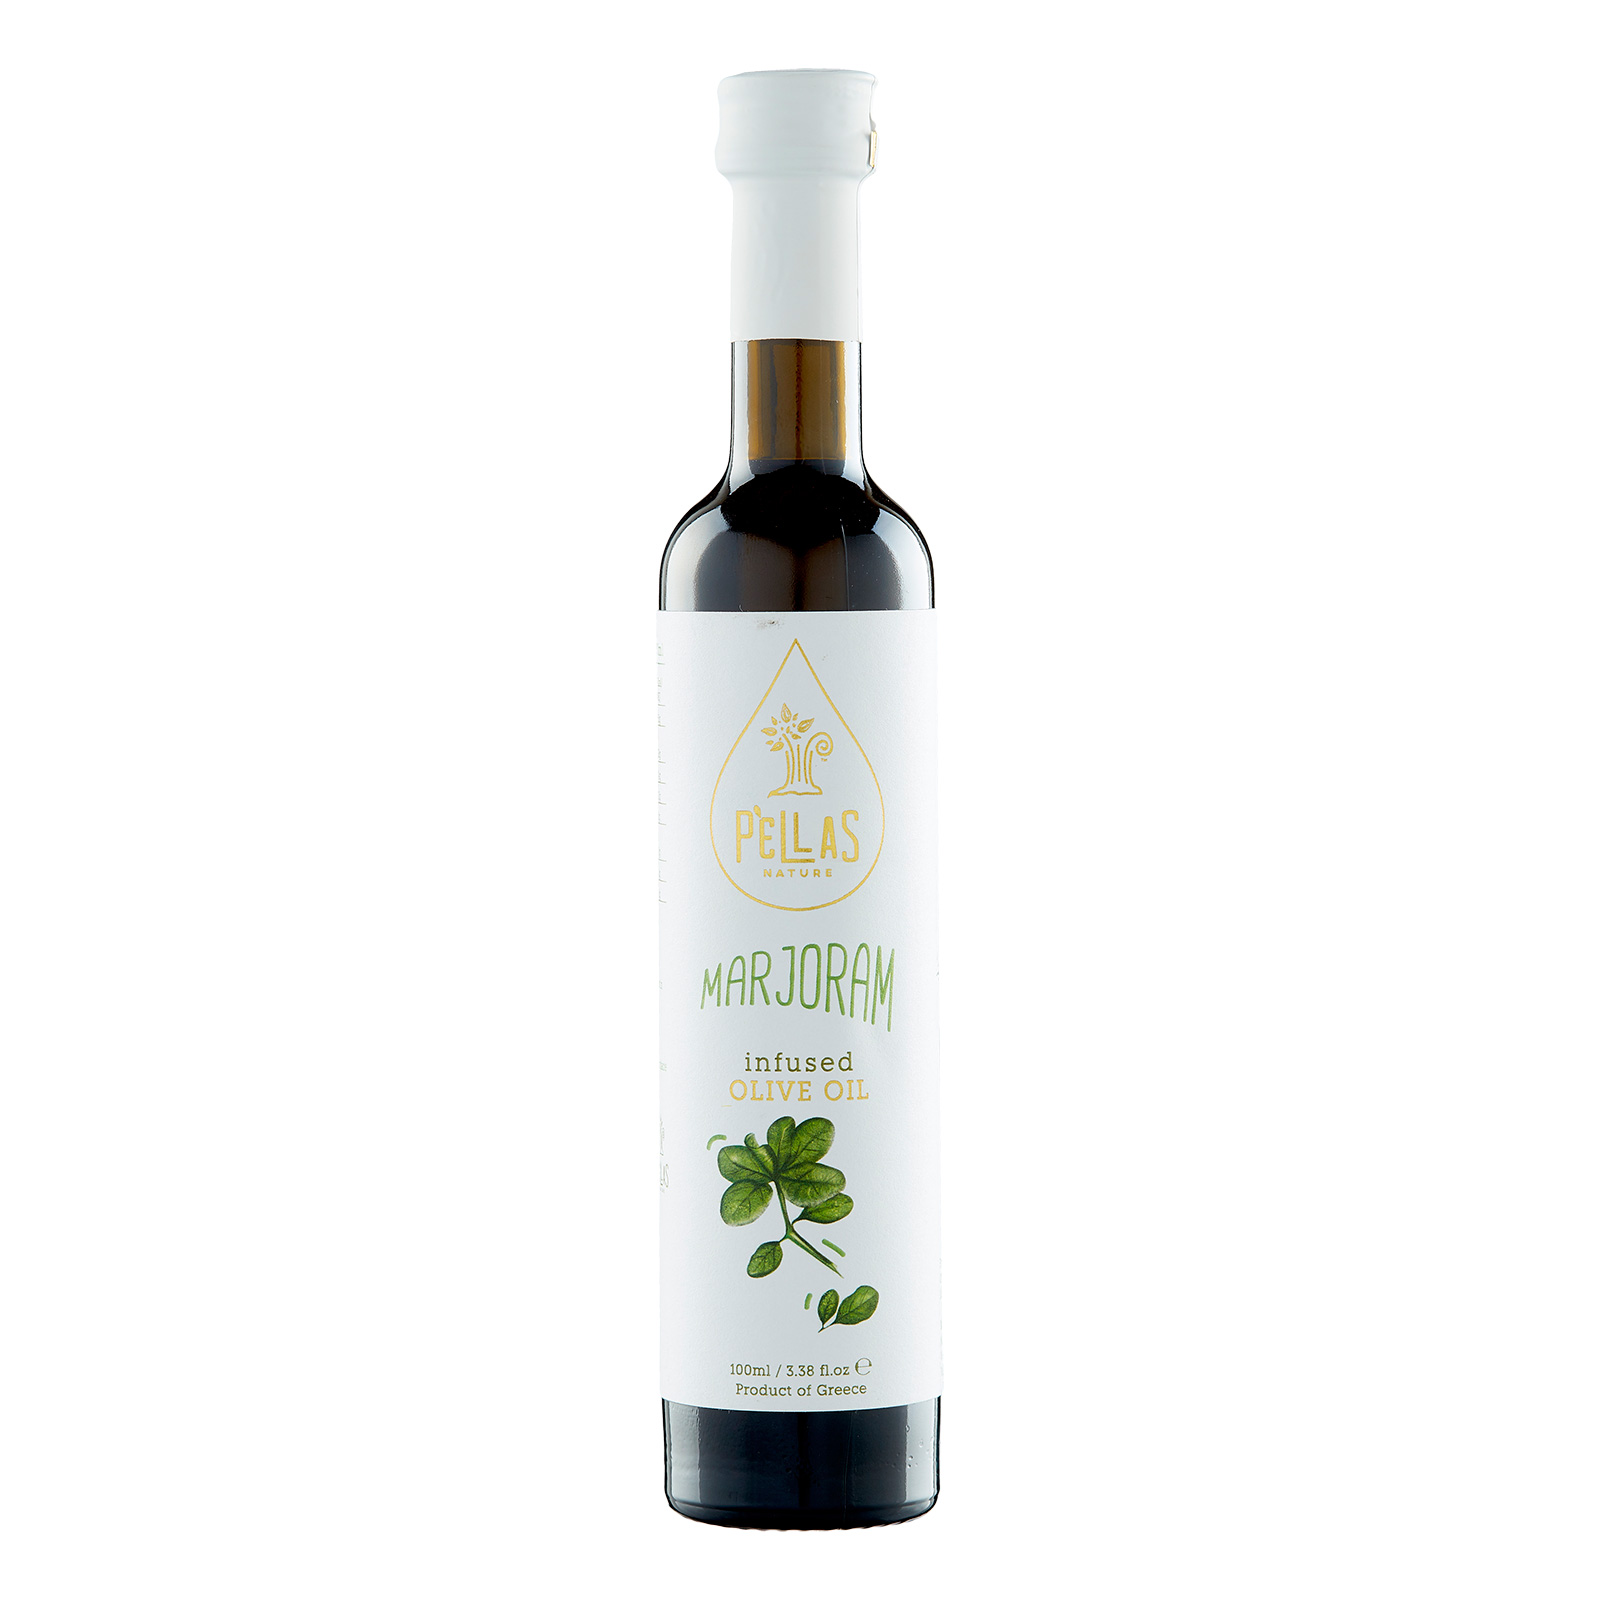 Pellas Nature Marjoram infused Extra Virgin Olive Oil 3.38 fl.oz Bottle